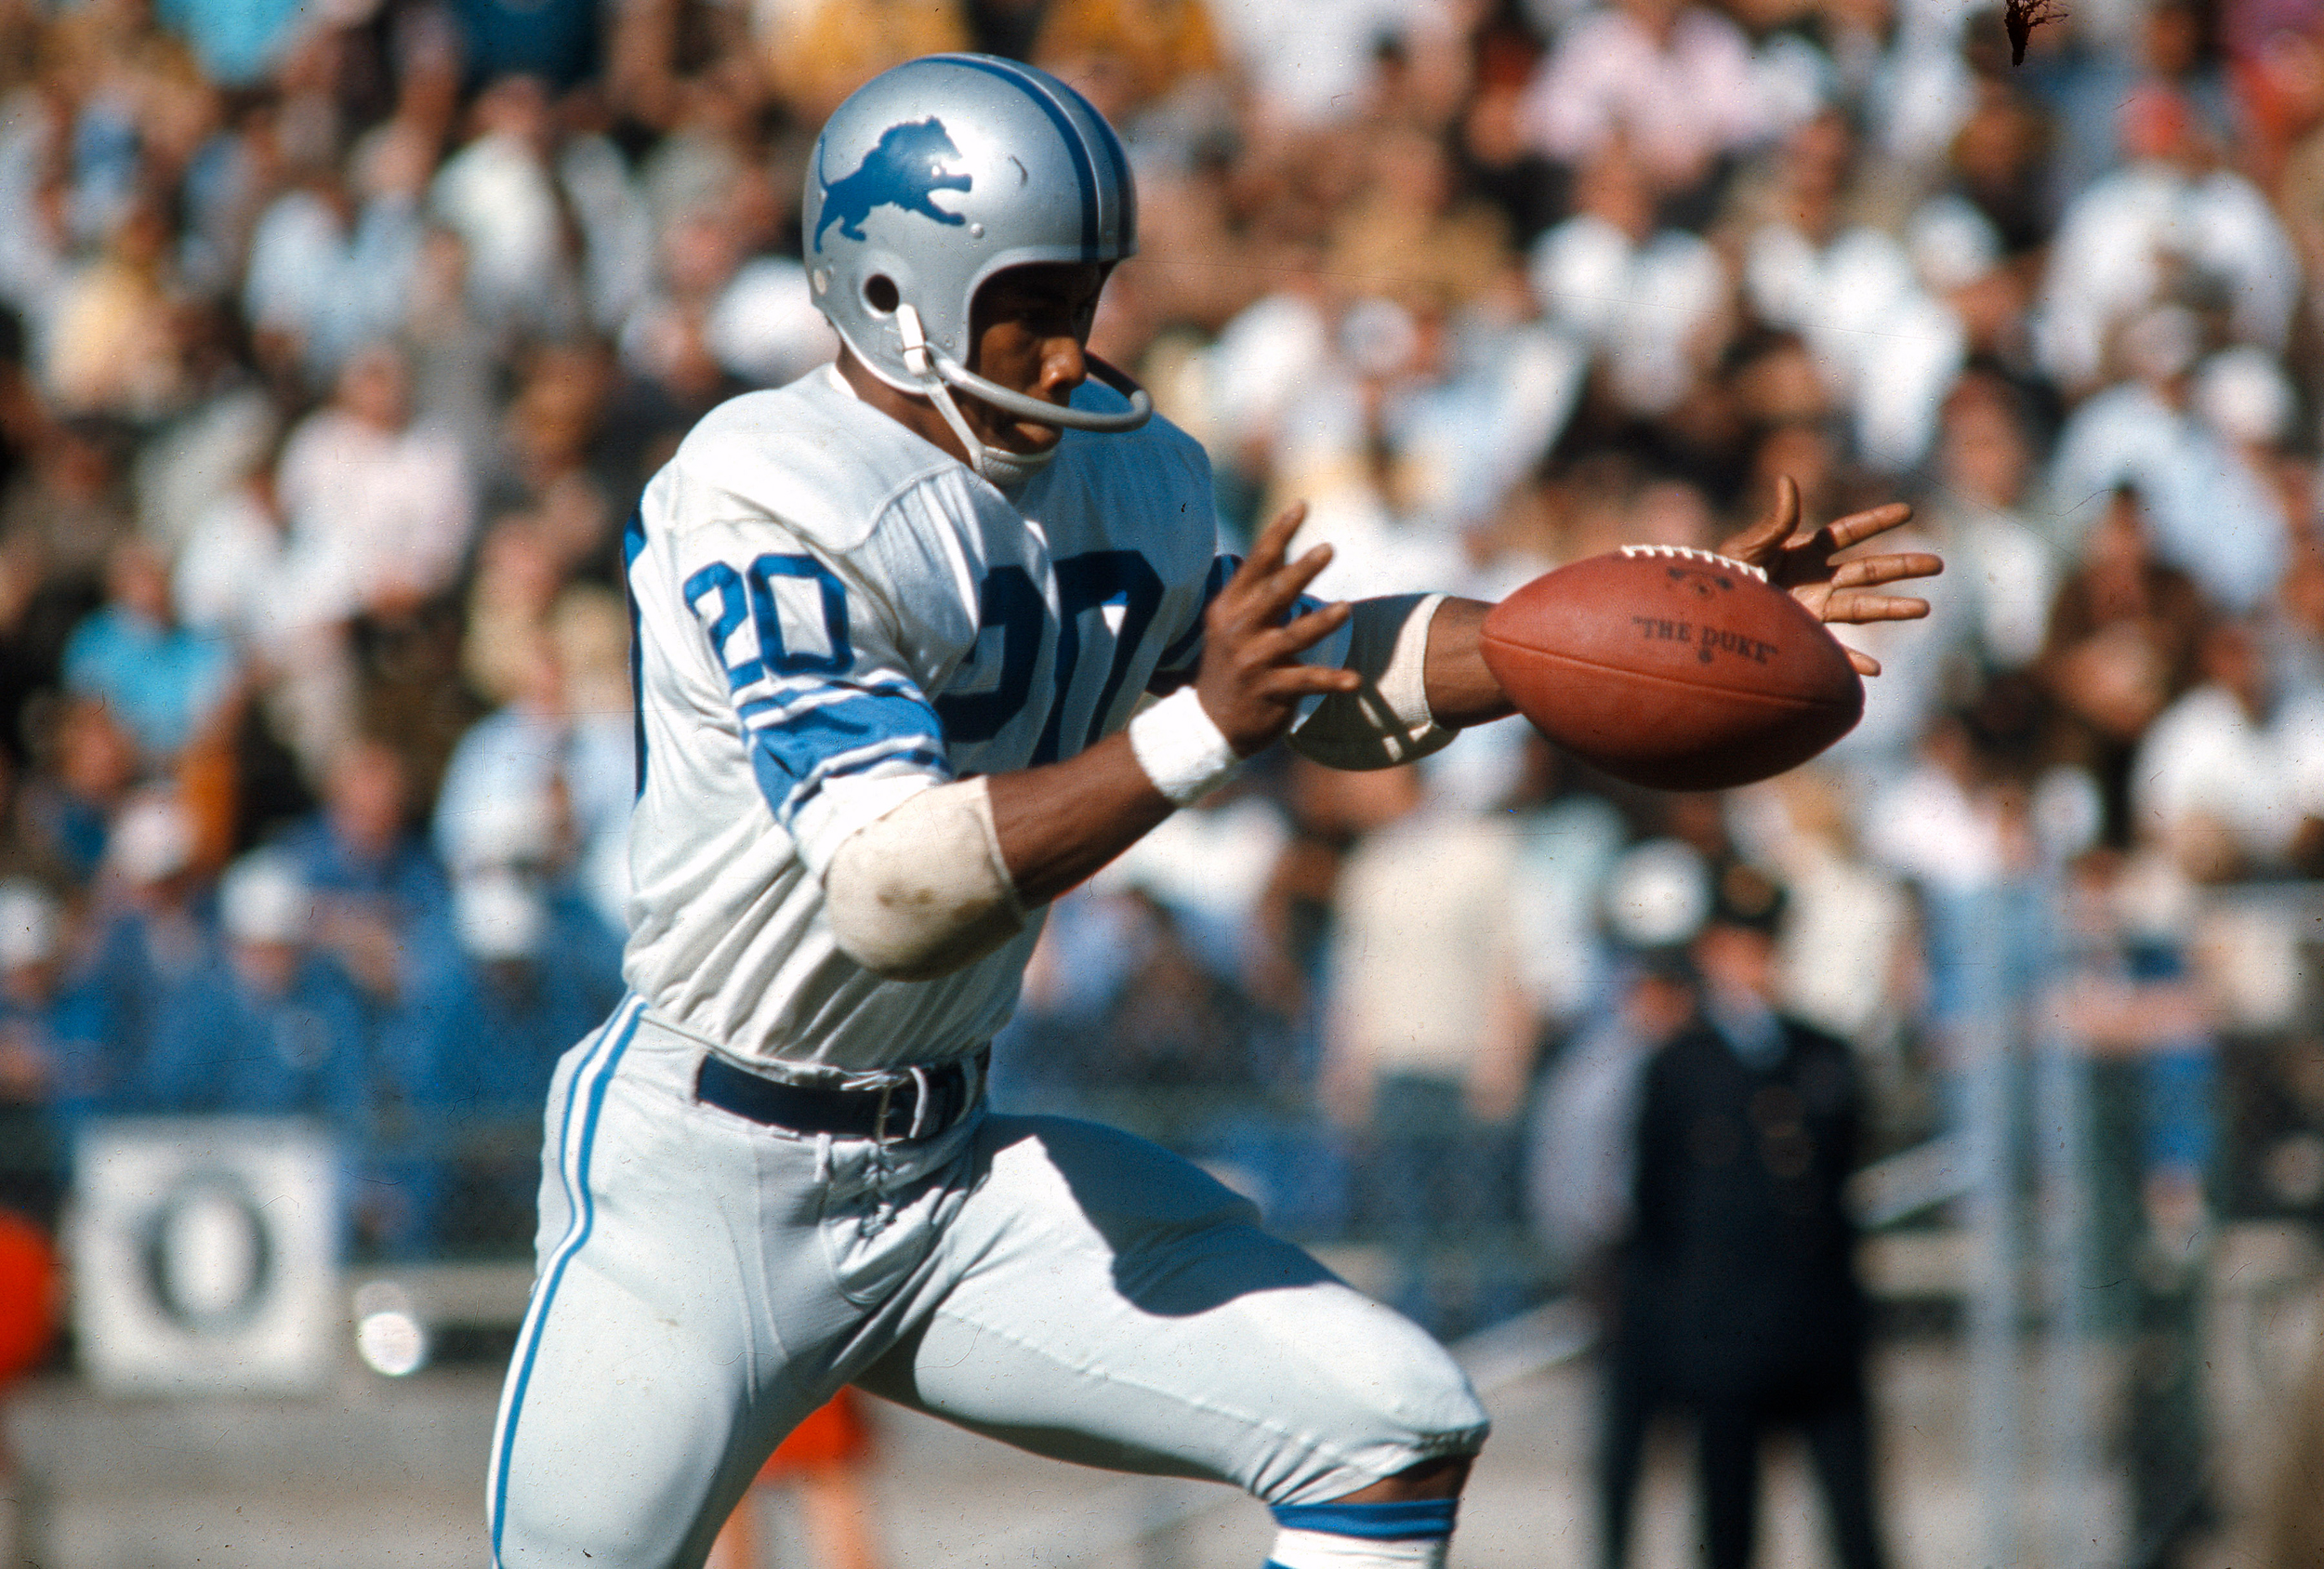 Lem Barney #20 of the Detroit Lions punts the ball against the San Francisco 49ers during an NFL football game October 29, 1967 at Kezar Stadium in San Francisco, California. Barney played for the Lions from 1967-77.